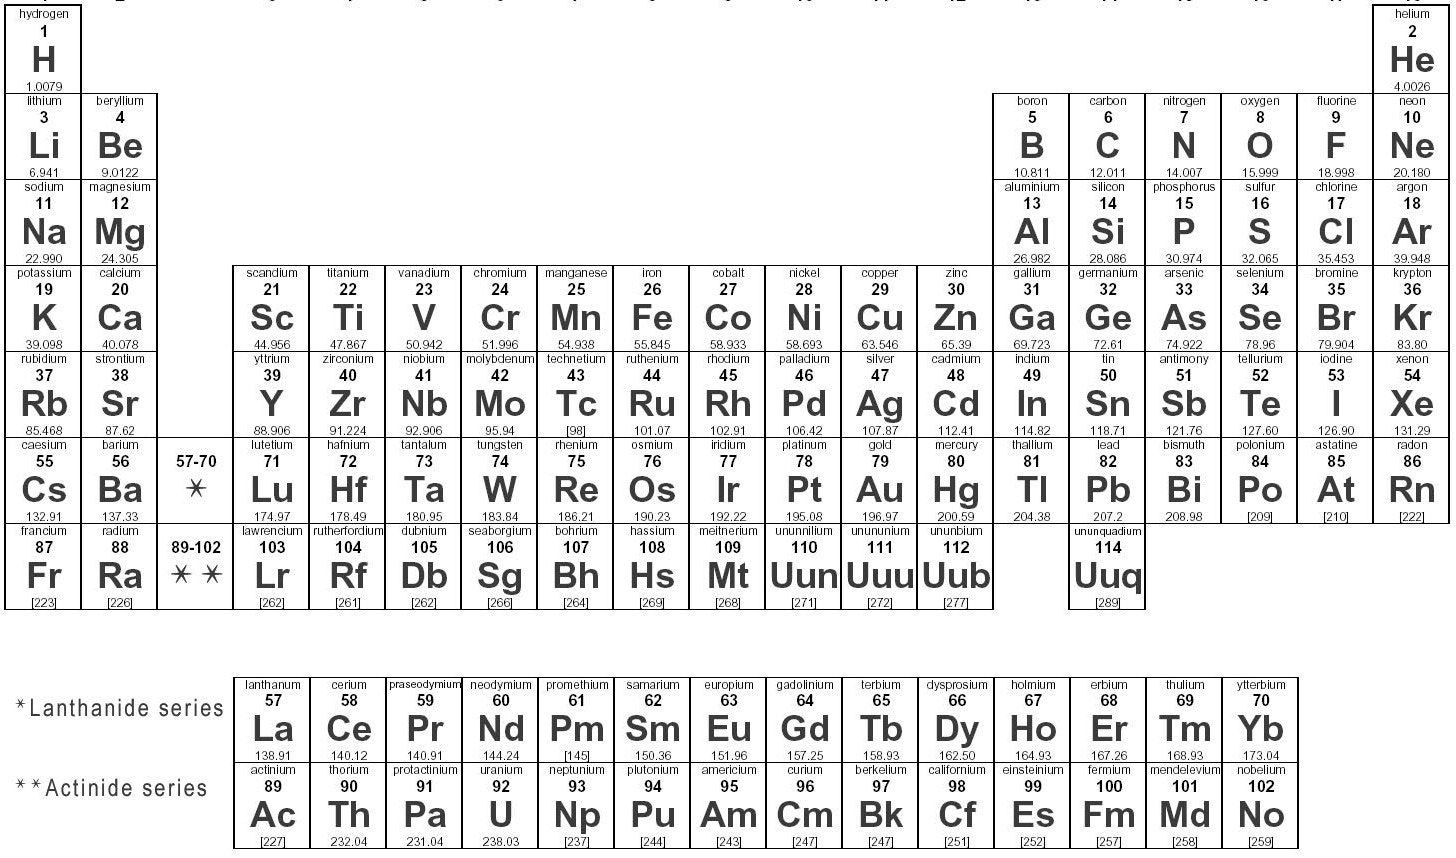 Ngss physical sciences grams to moles conversion periodic table digital image wikipedia commons wikimedia foundation inc 2008 web 12 jan 2017 the molar mass urtaz Gallery